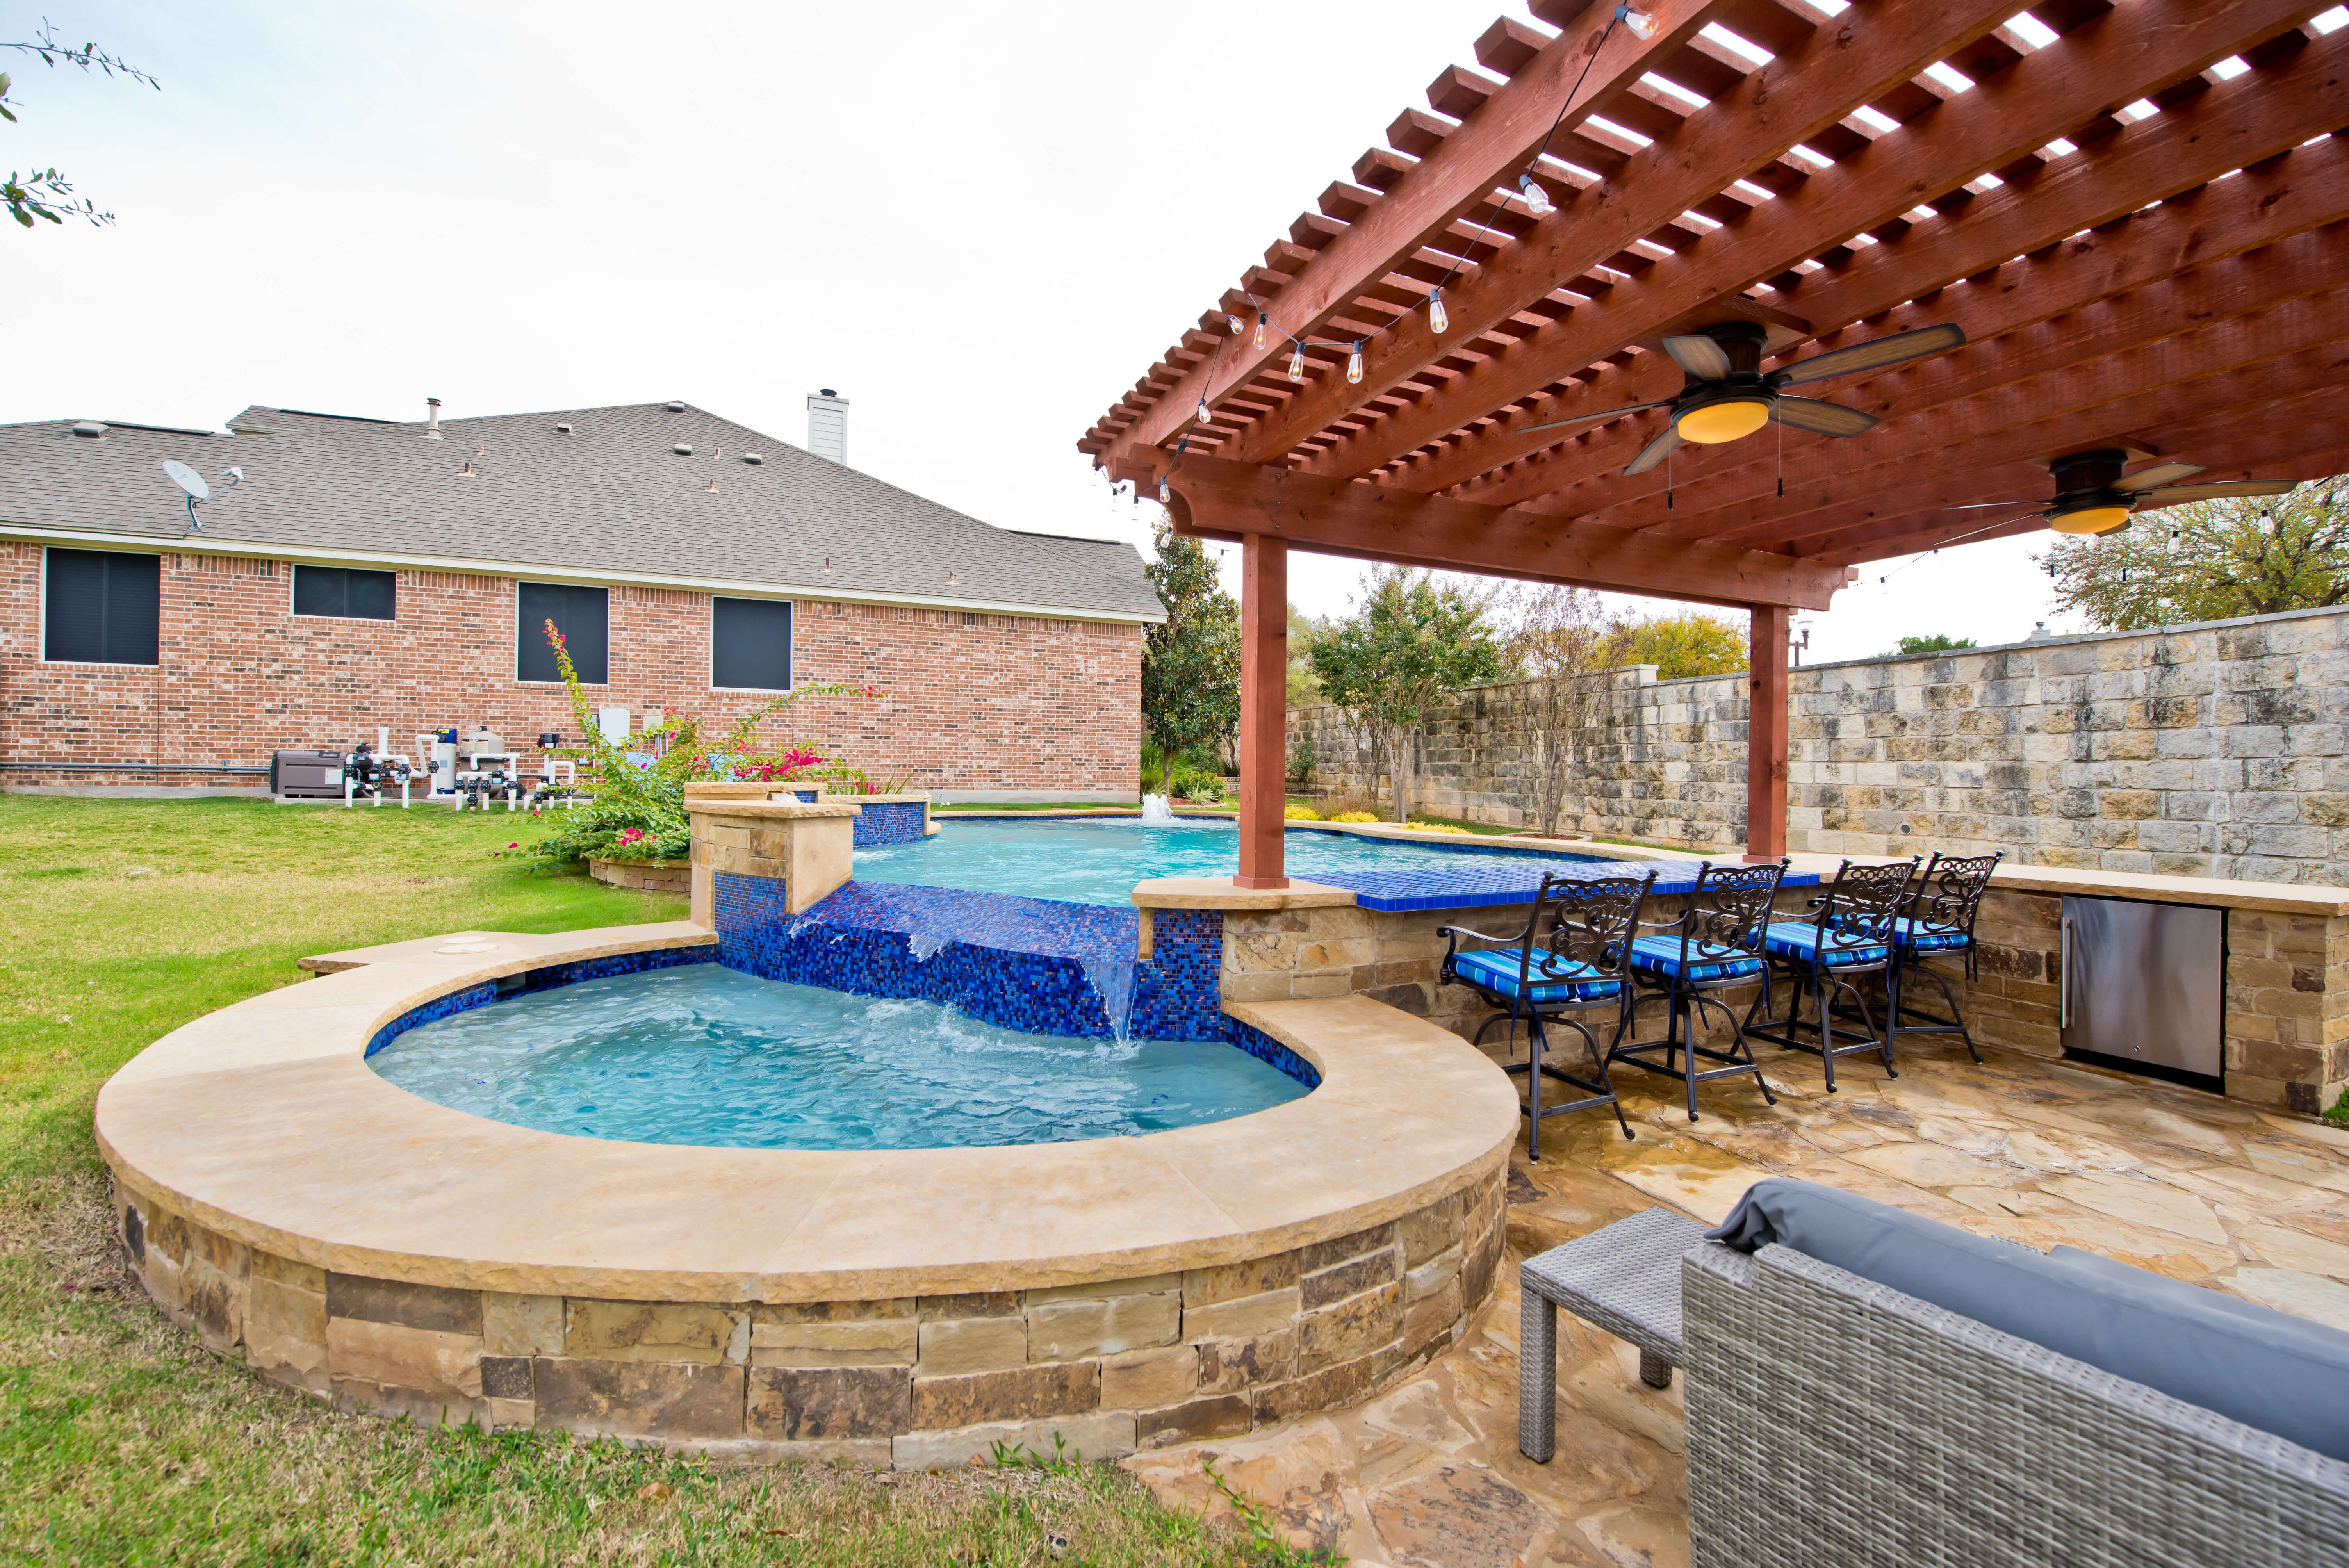 Pin By Texas Pools Patios On Texas Pool And Patio Outdoor Living Outdoor Living Pool Patio Patio